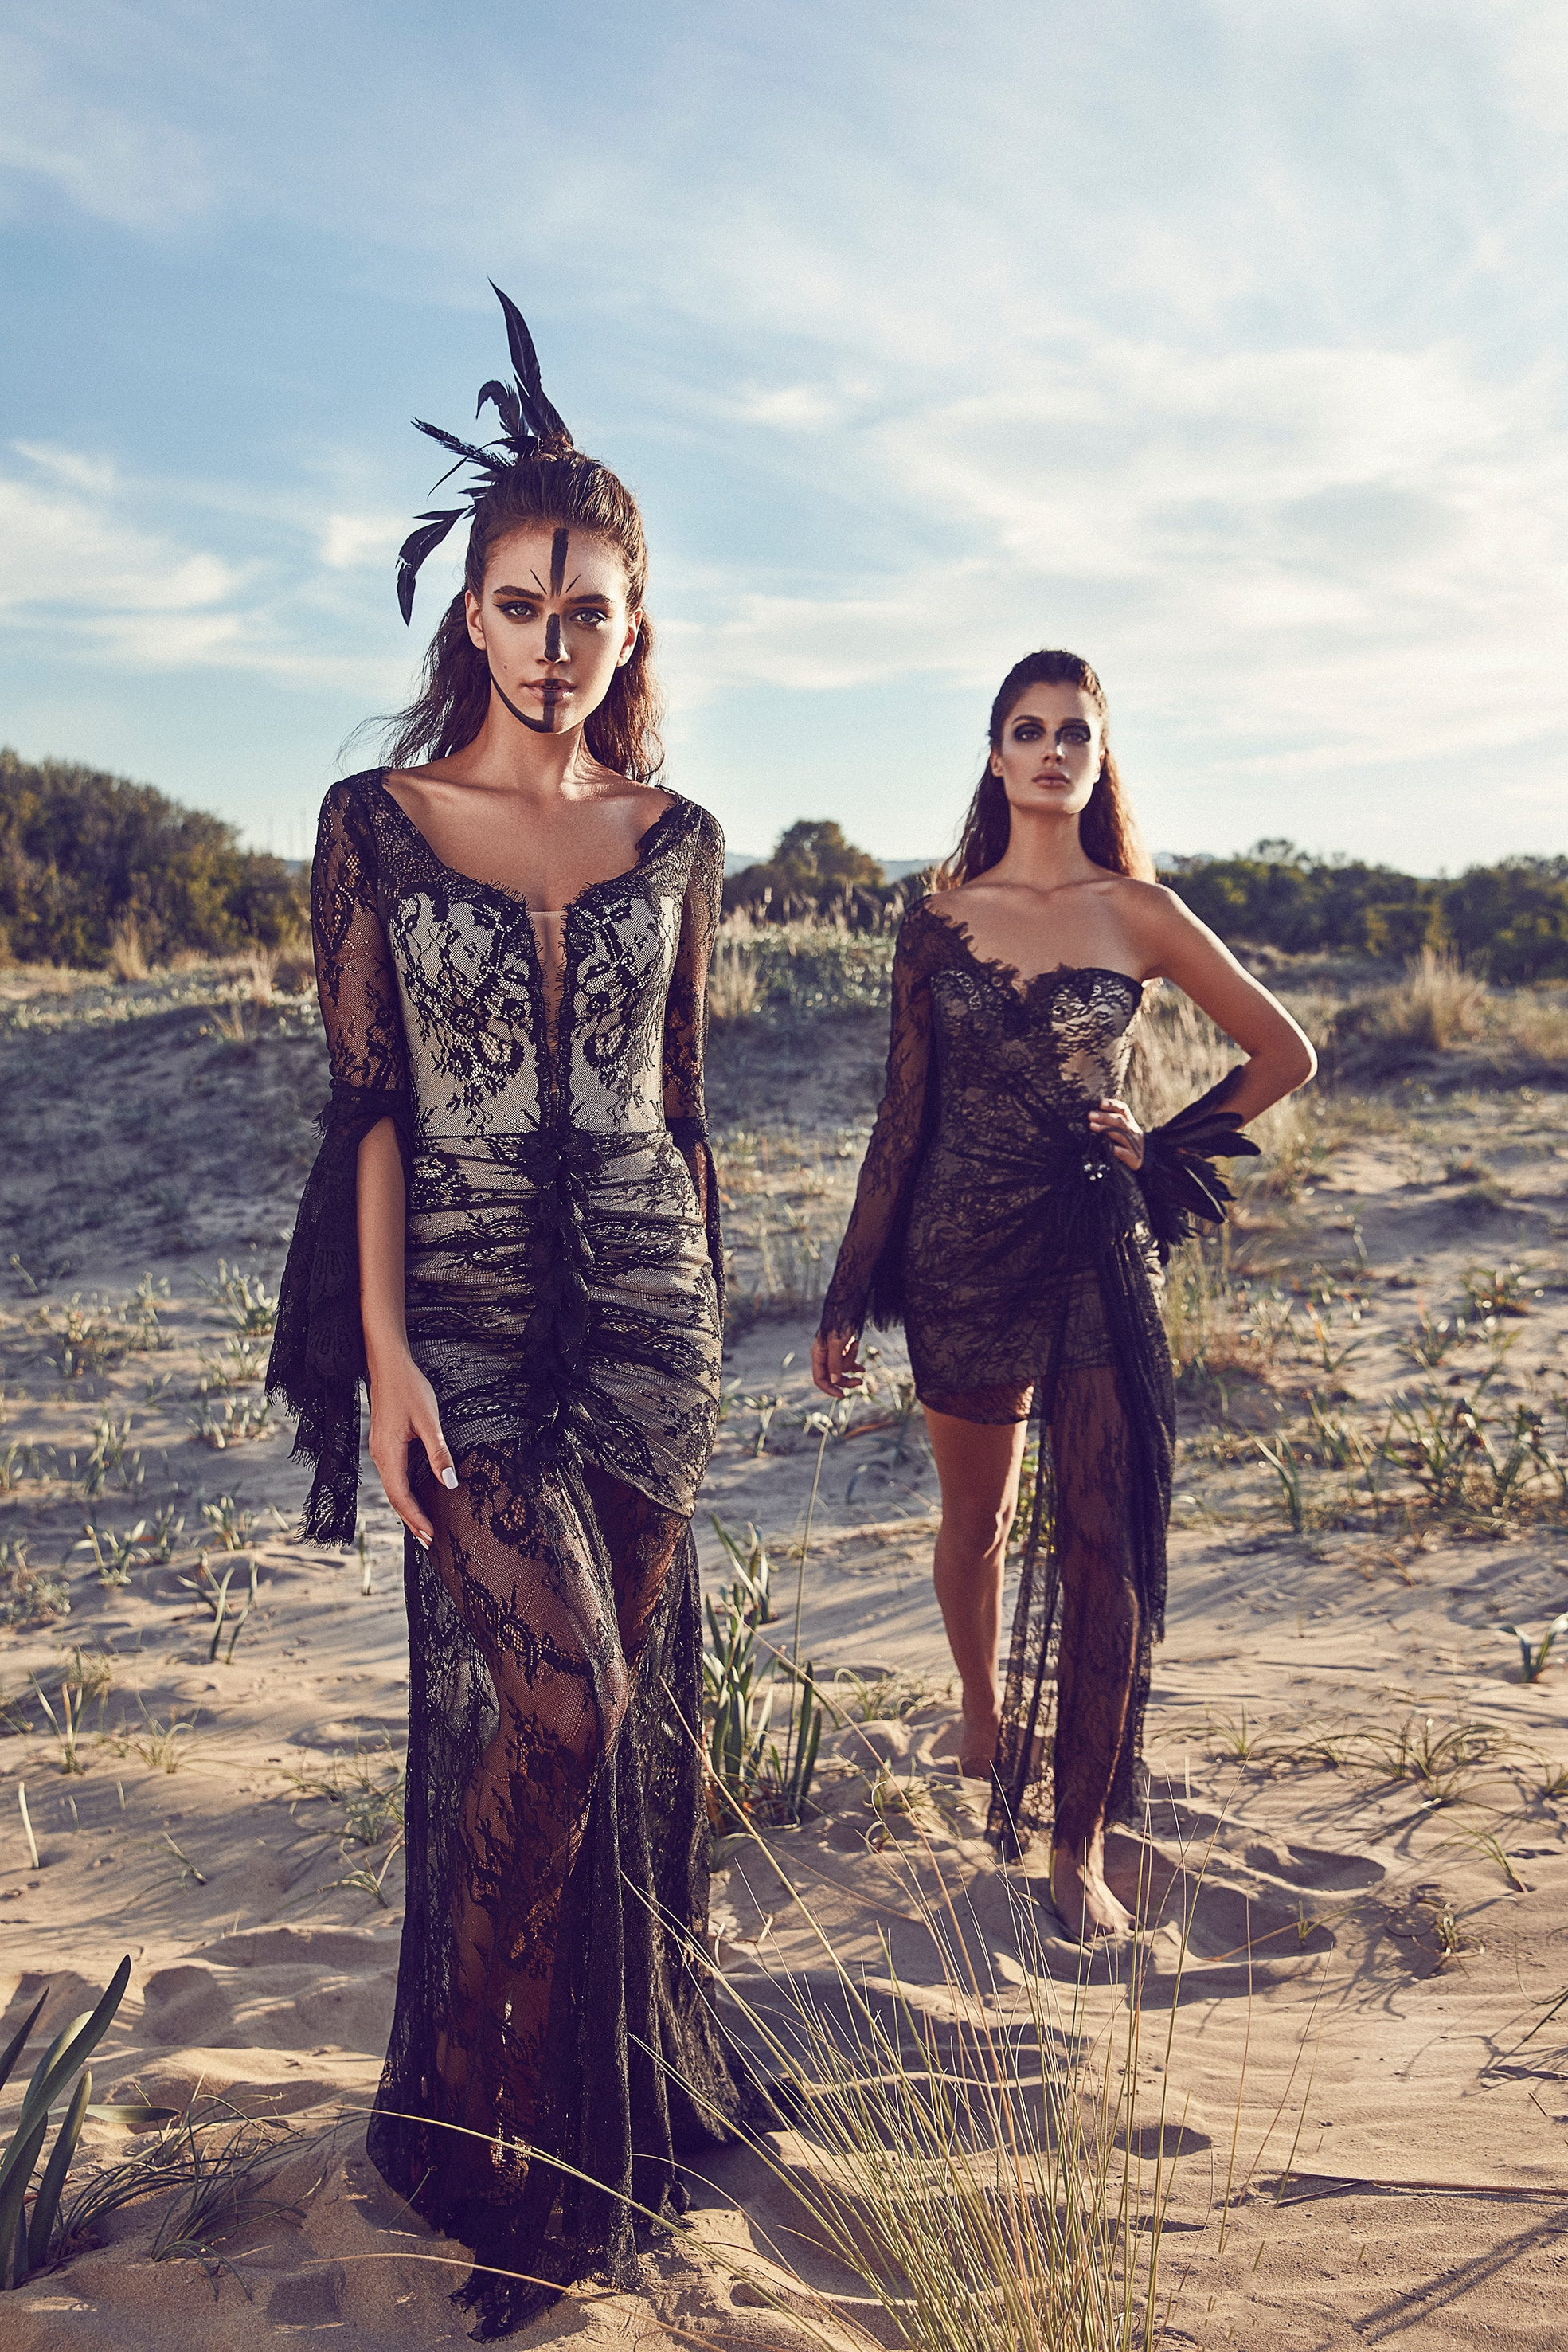 Two women modeling dresses and makeup in the desert